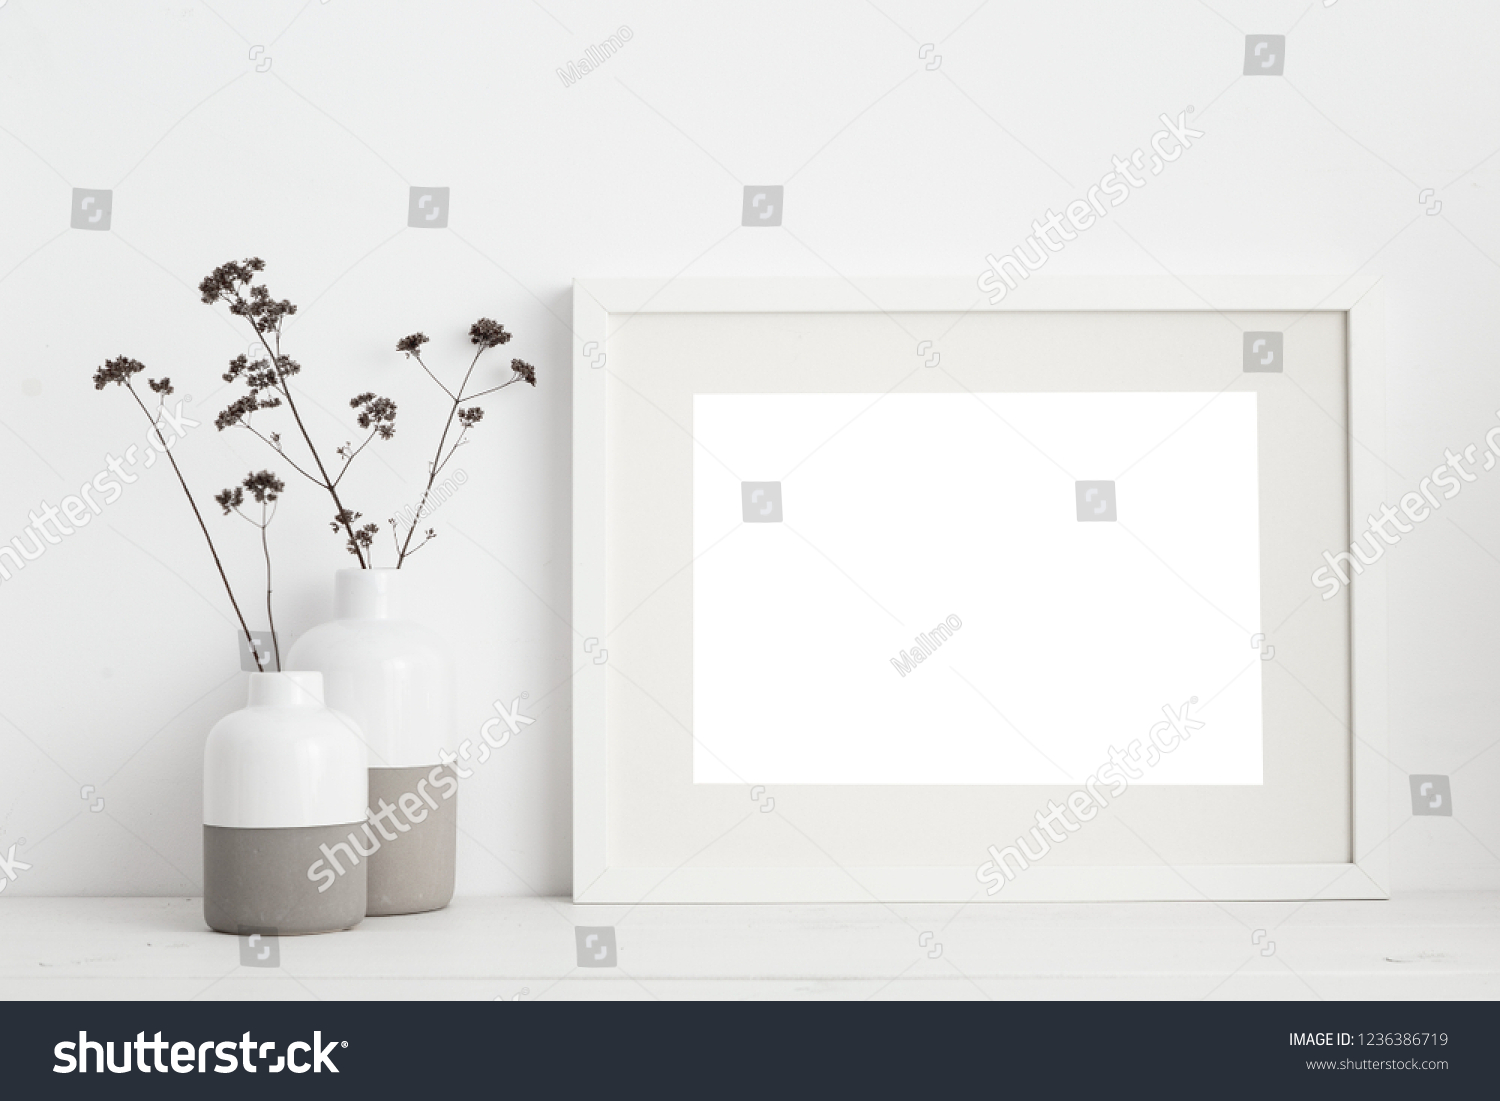 white frame mock up and dry twigs in vase on book shelf or desk. White colors.   #1236386719